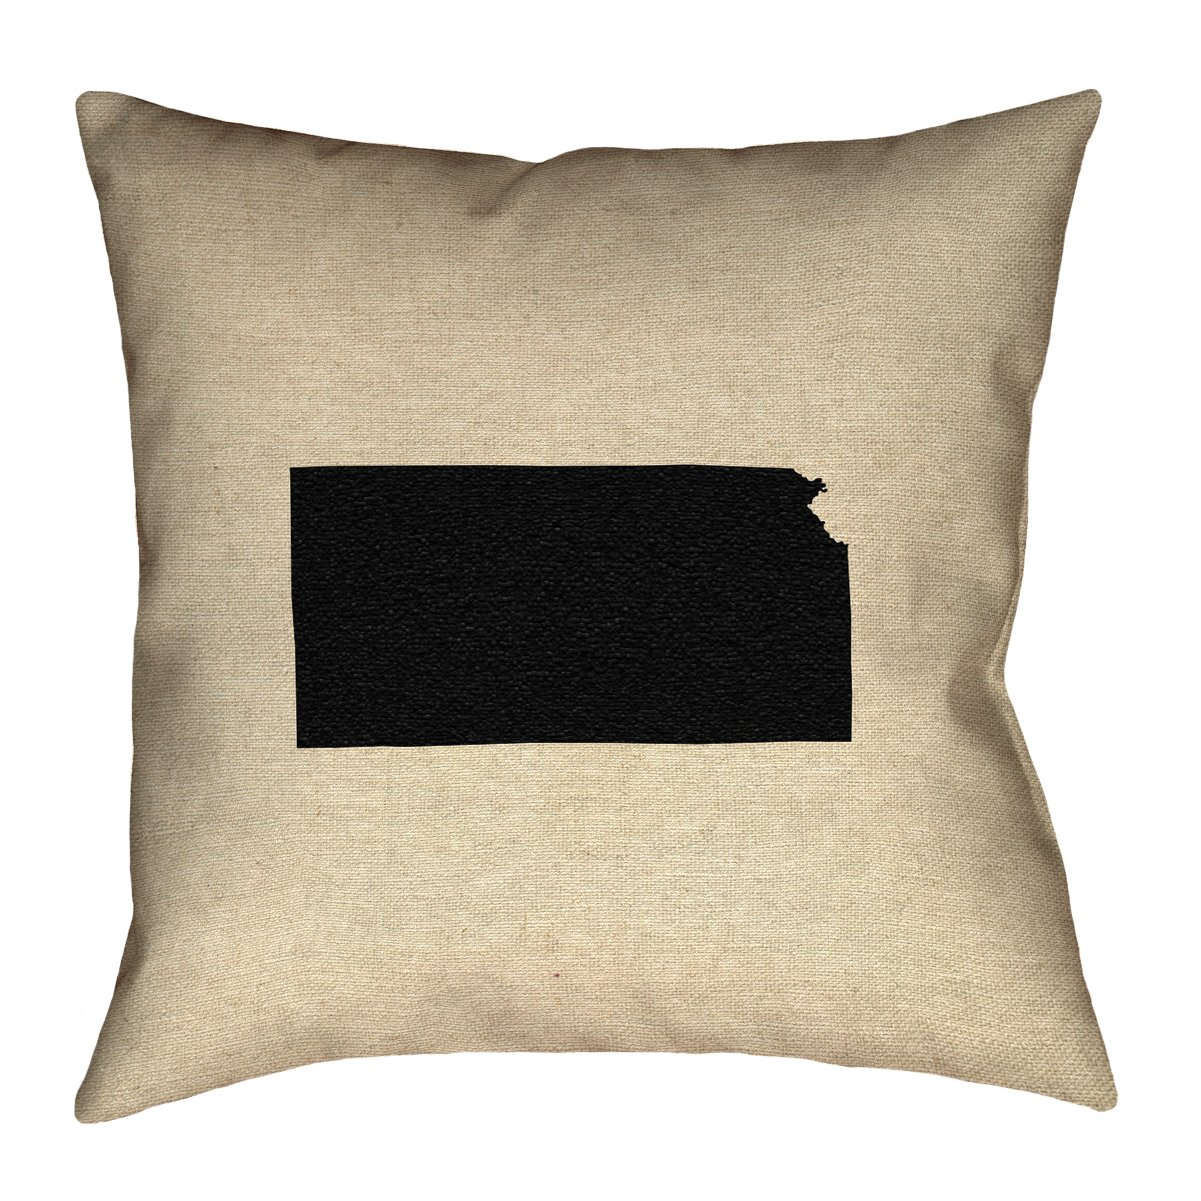 ArtVerse Katelyn Smith 26 x 26 Cotton Twill Double Sided Print with Concealed Zipper /& Insert Kansas Pillow